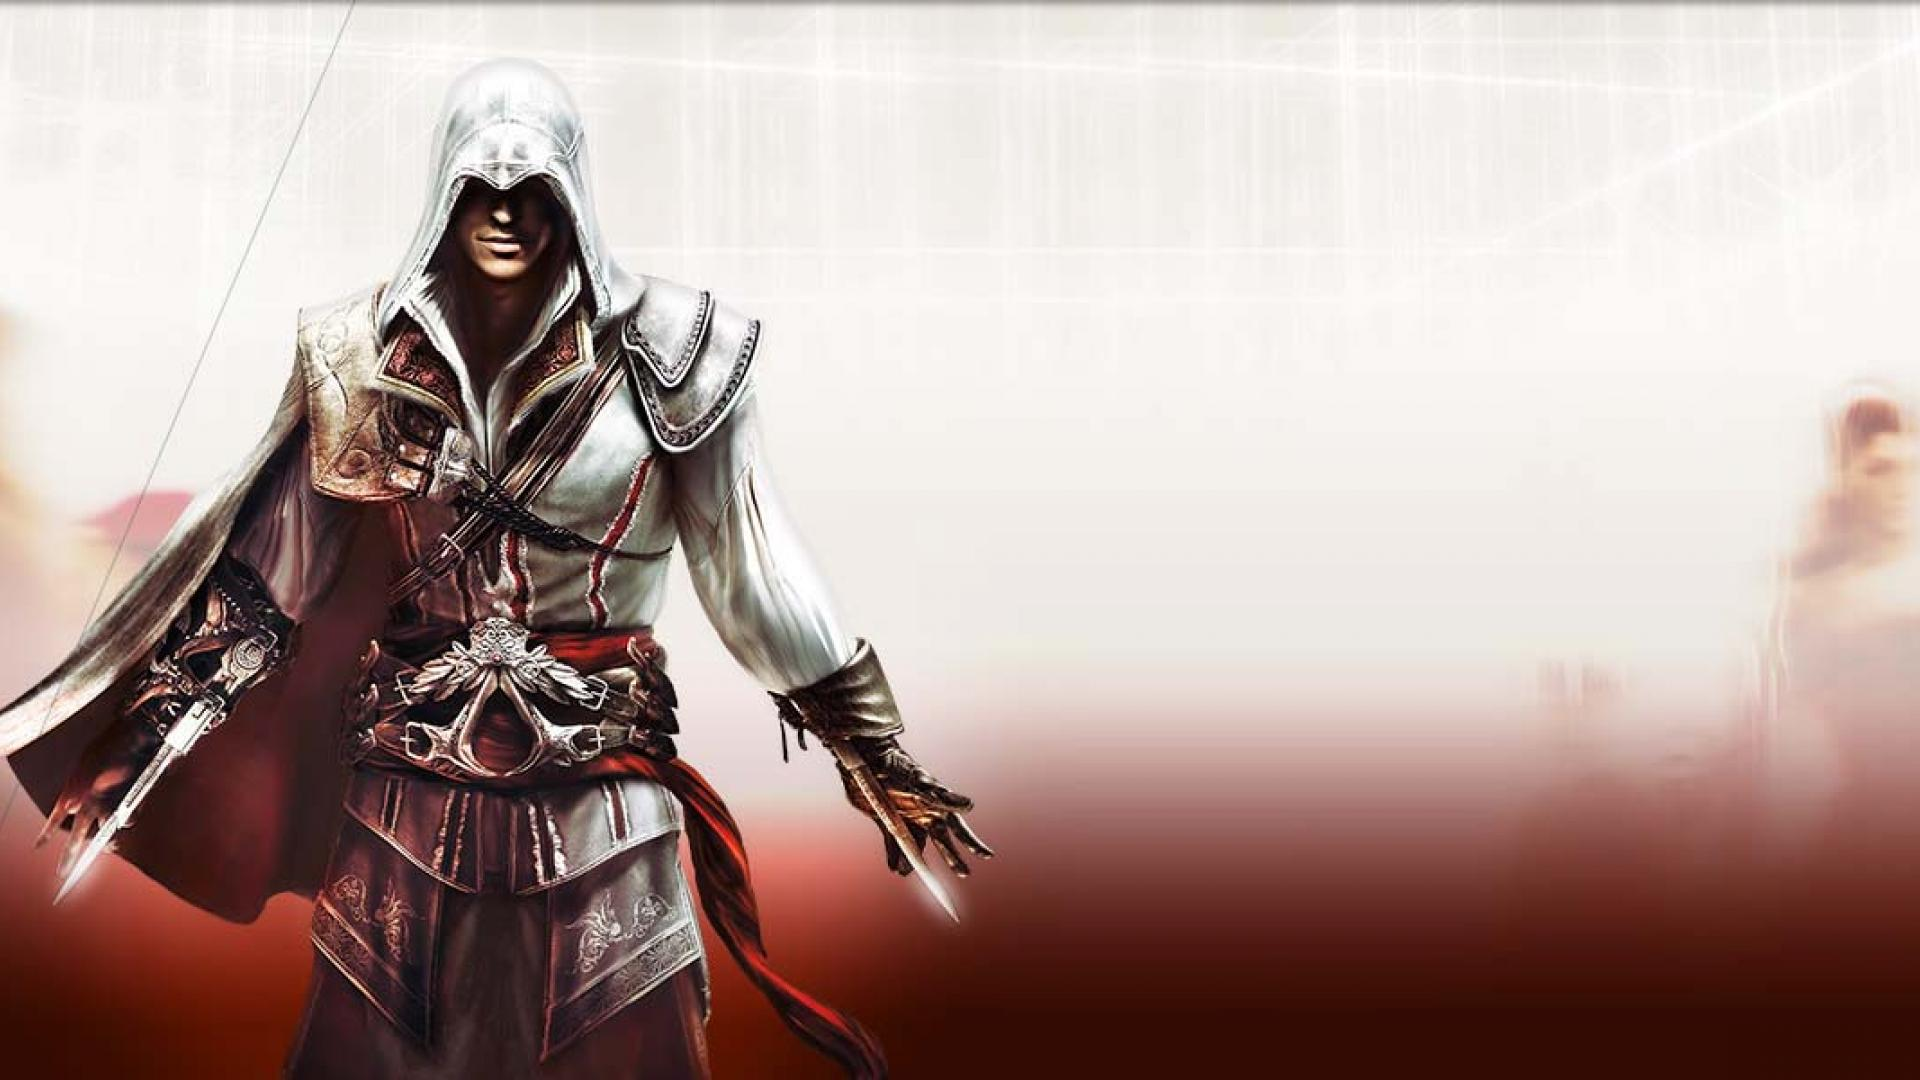 Assassins creed pron nackt picture